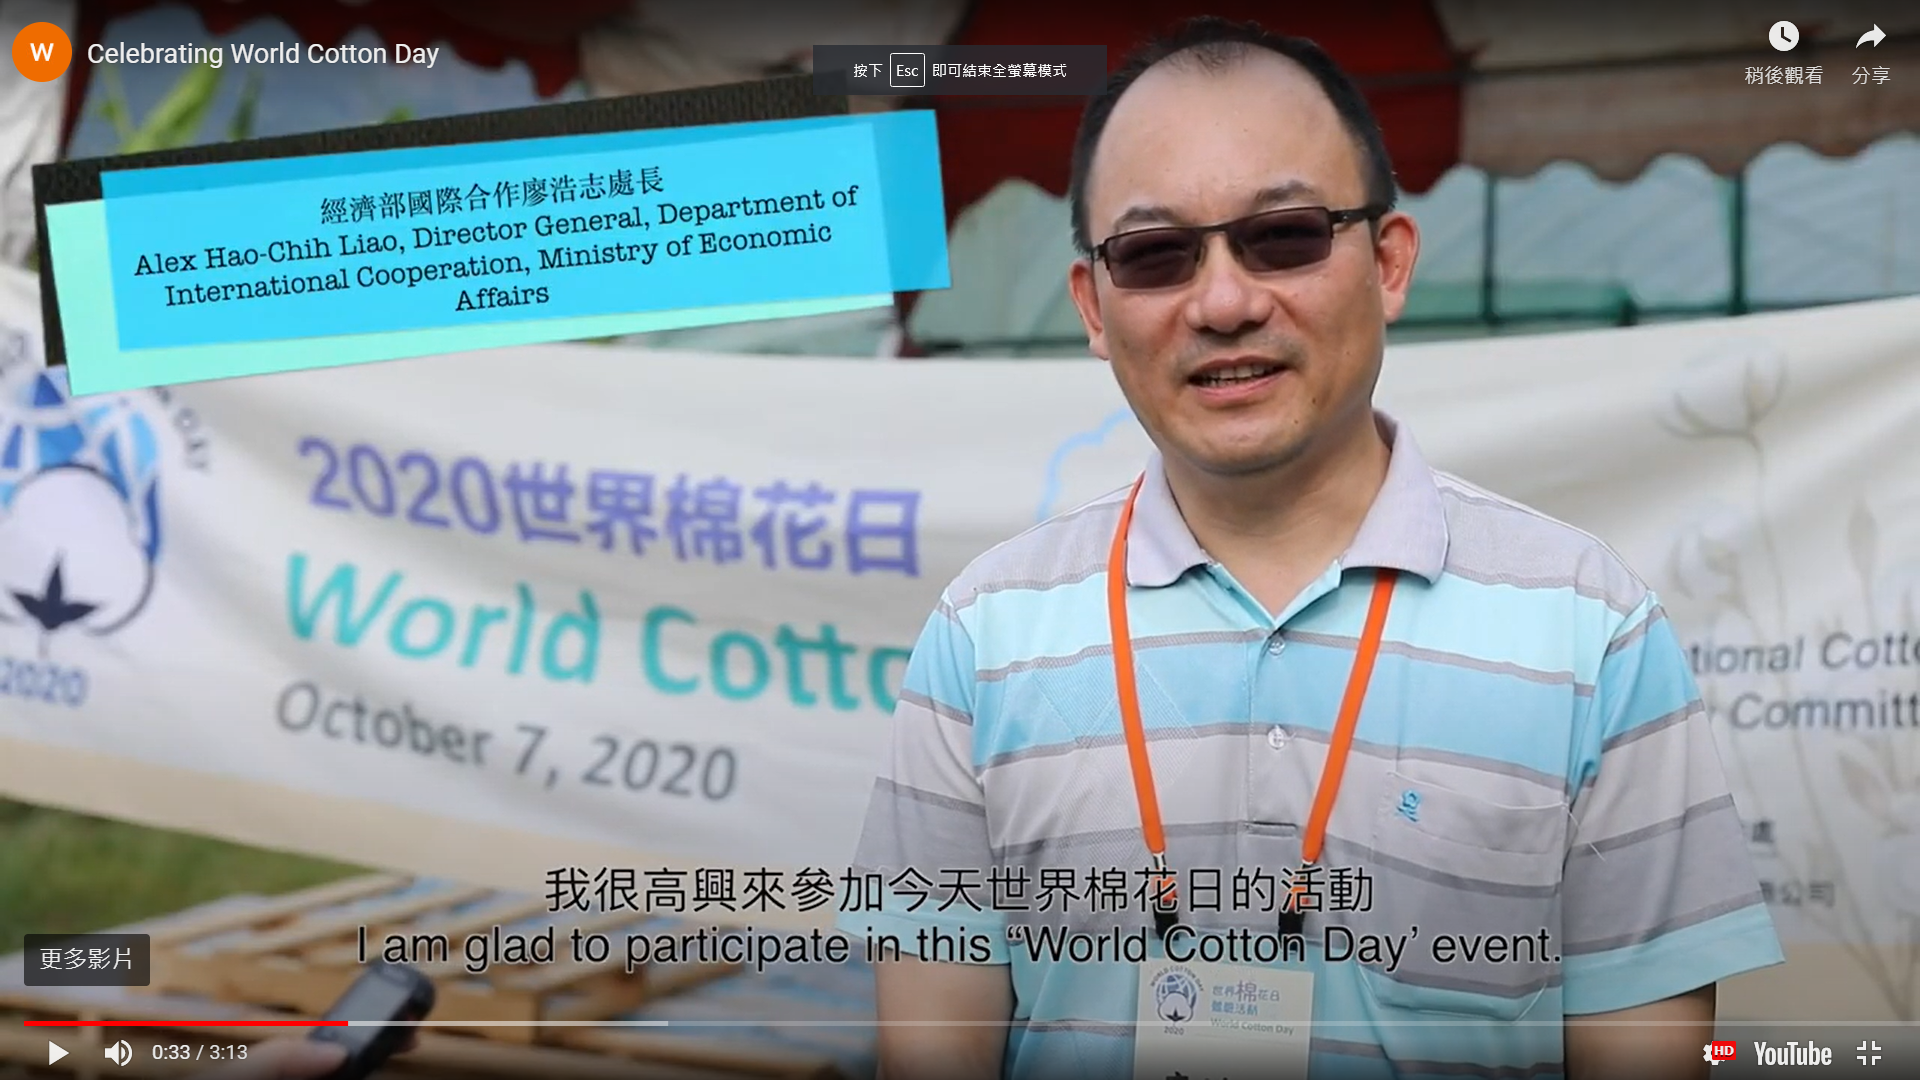 This video introduces Taiwan's activities held to mark this year's World Cotton Day, including a fieldtrip to an organic cotton farm and a workshop on indigo dyeing on Sept. 26 and 28, respectively